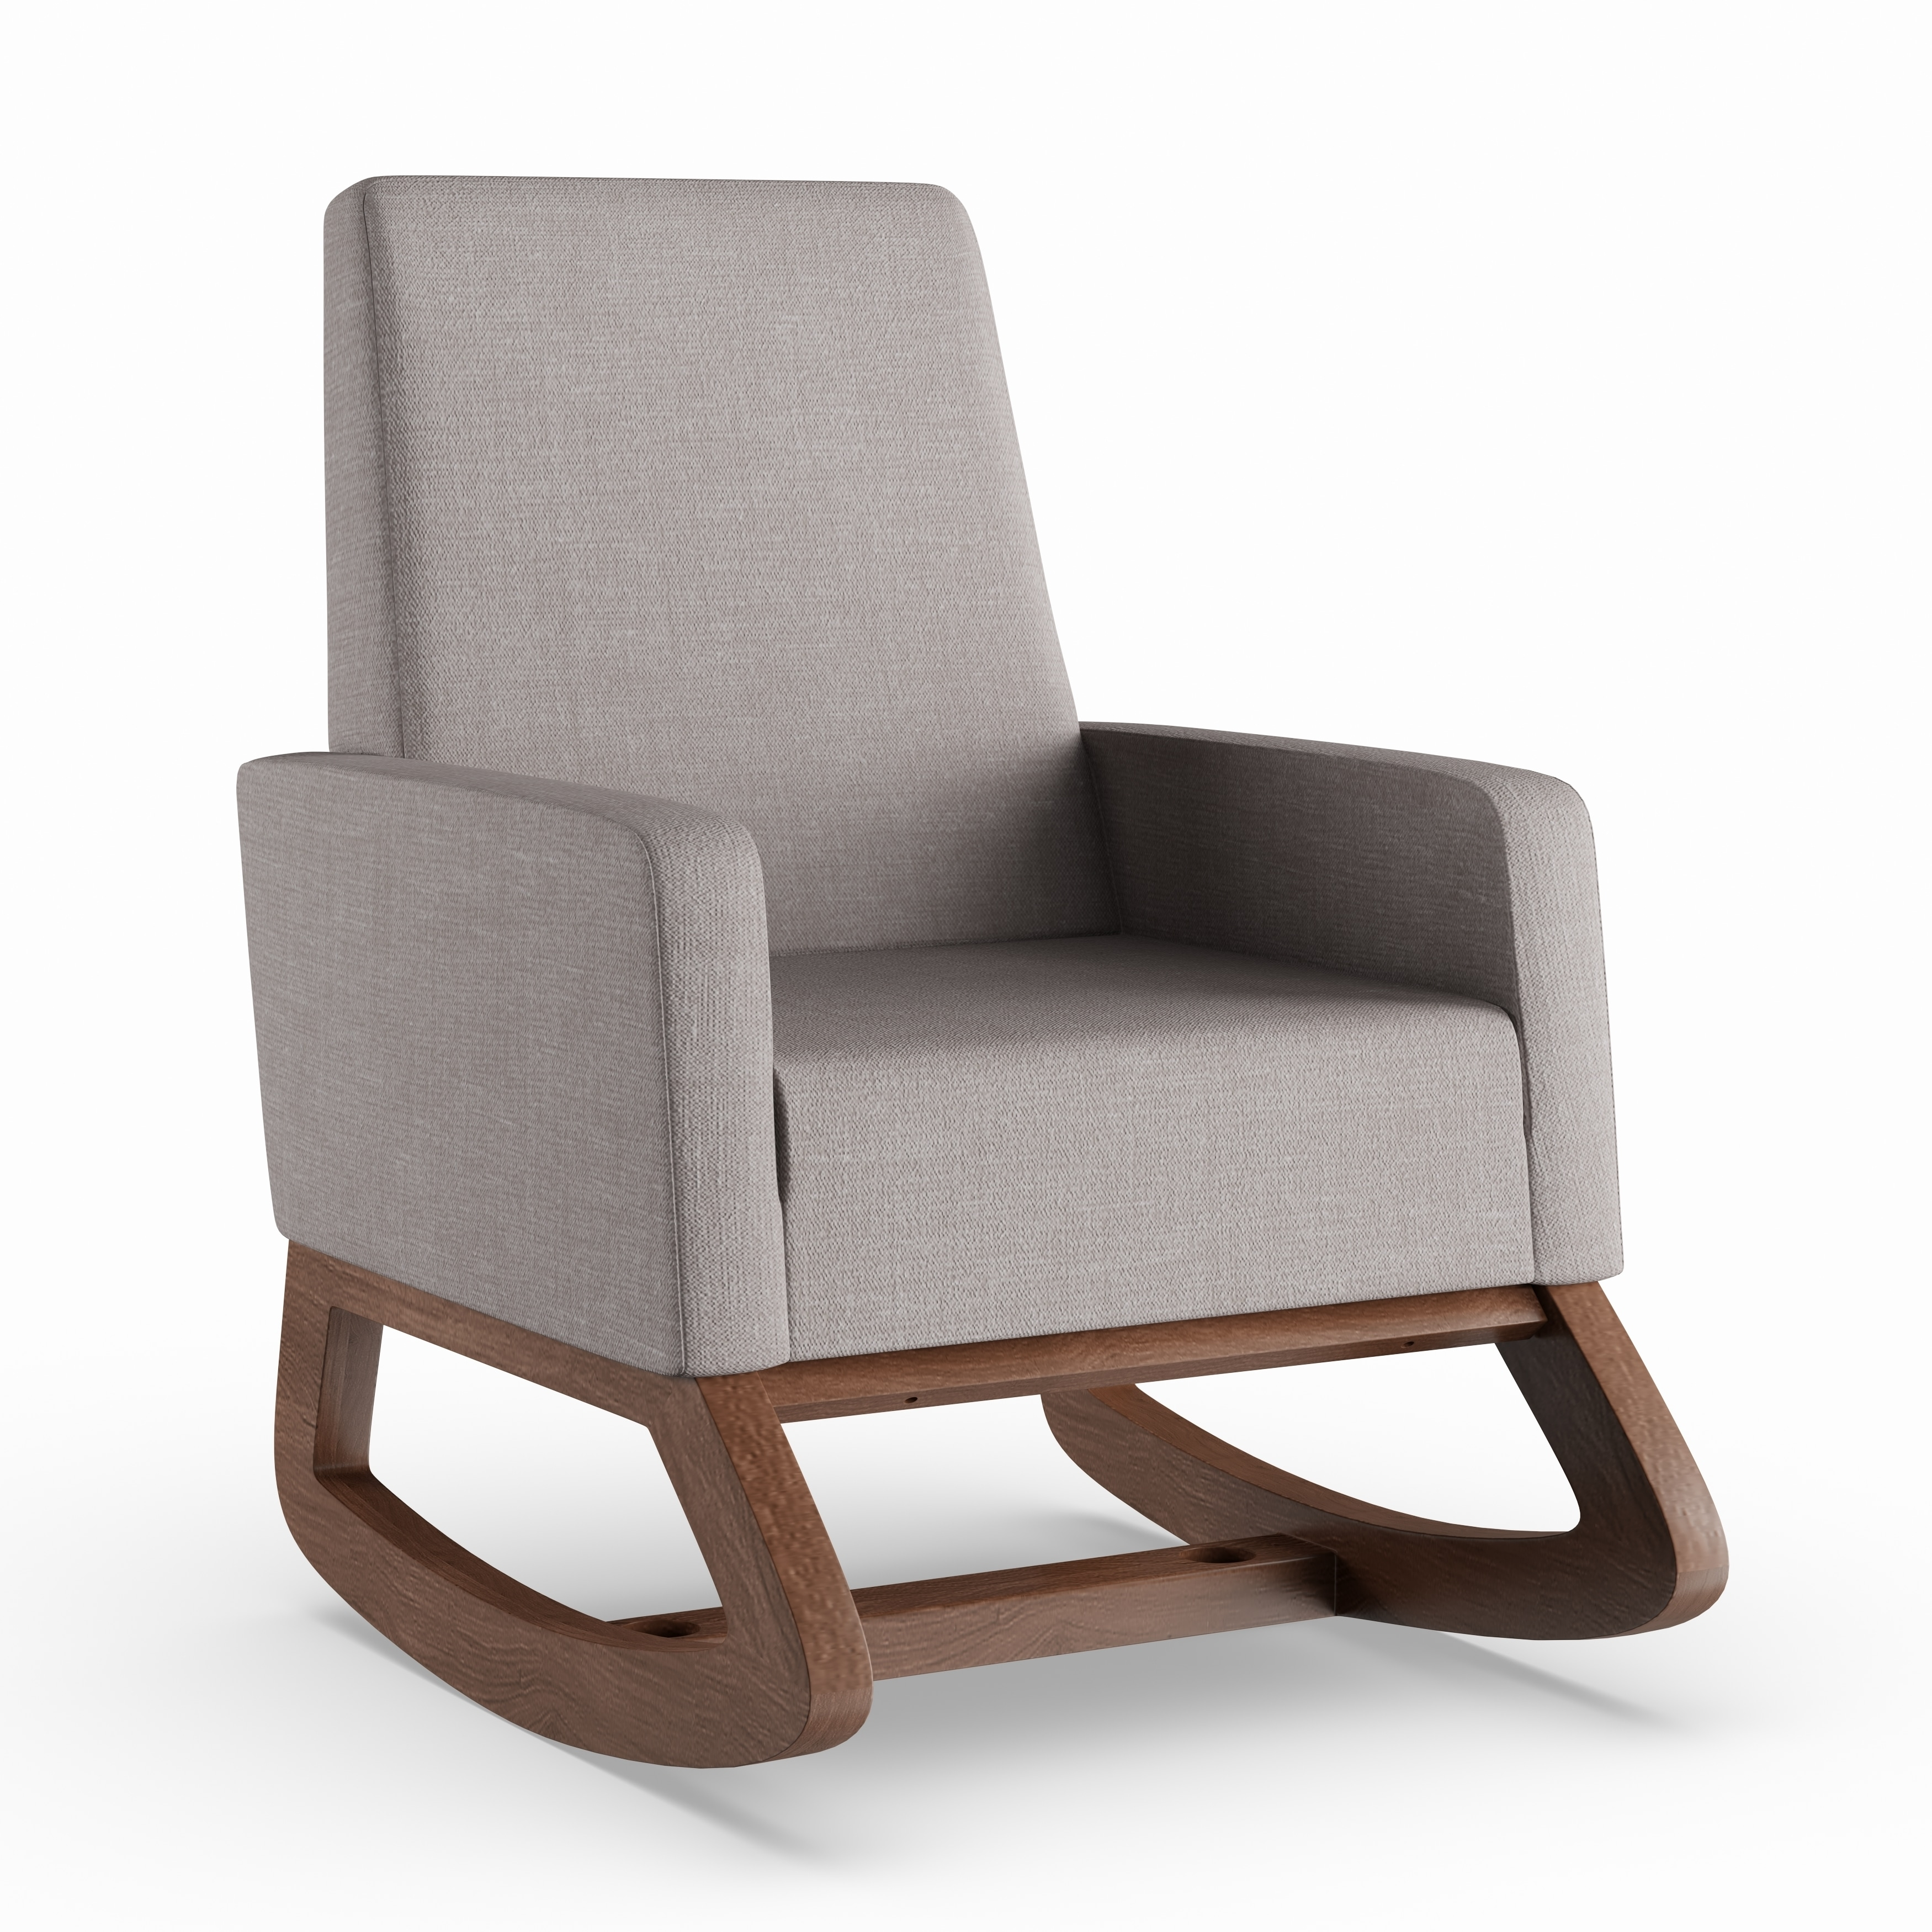 Groovy Carson Carrington Honningsvag Mid Century Modern Grey Upholstered Rocking Chair Creativecarmelina Interior Chair Design Creativecarmelinacom